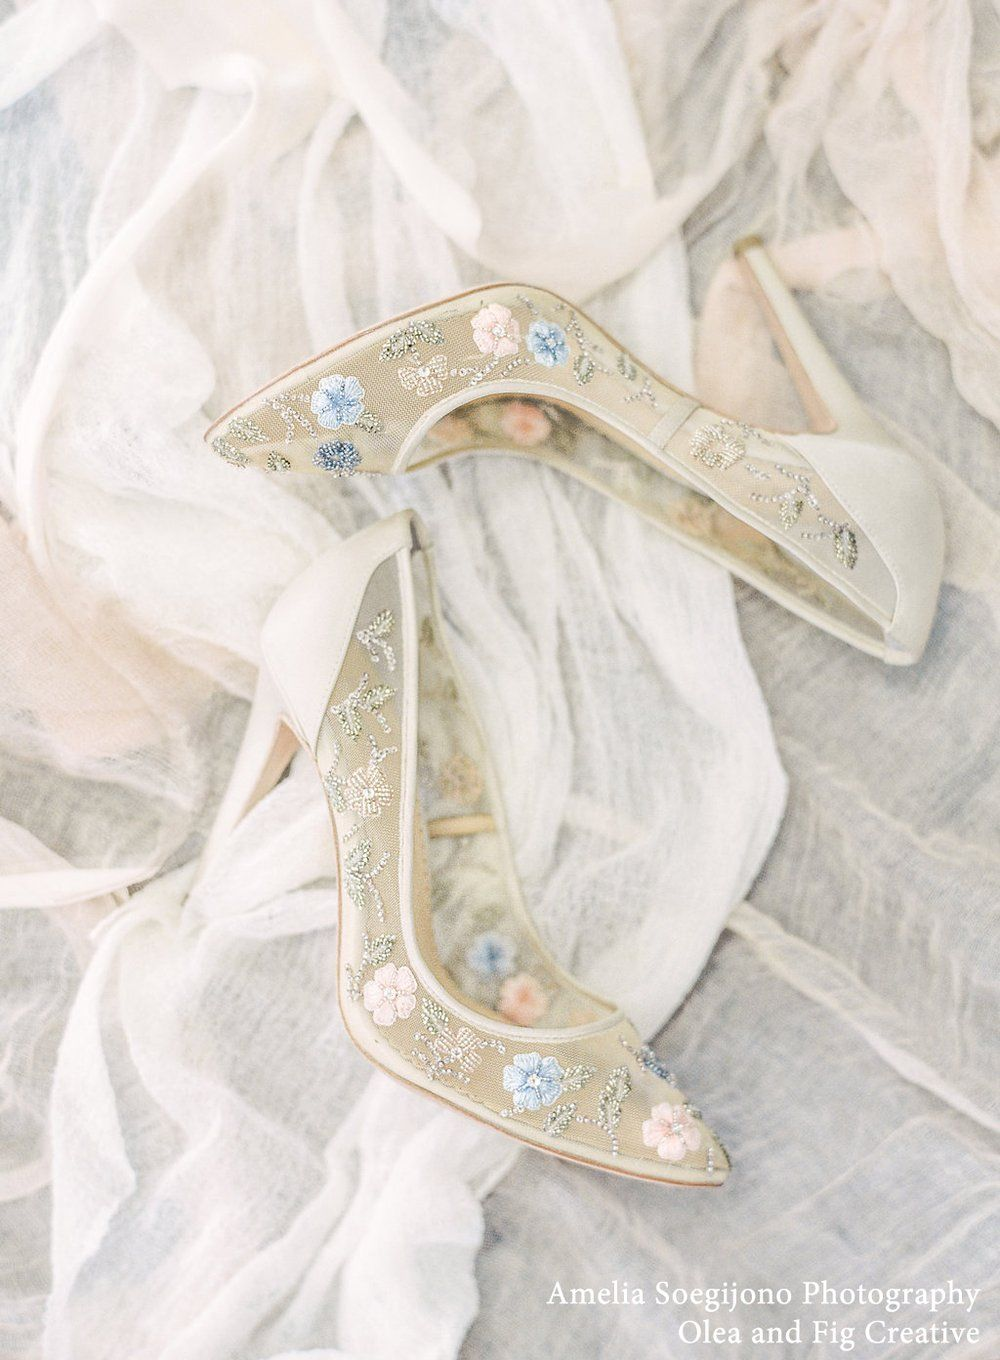 Flower Embellished Embroidered Wedding/Evening Heels